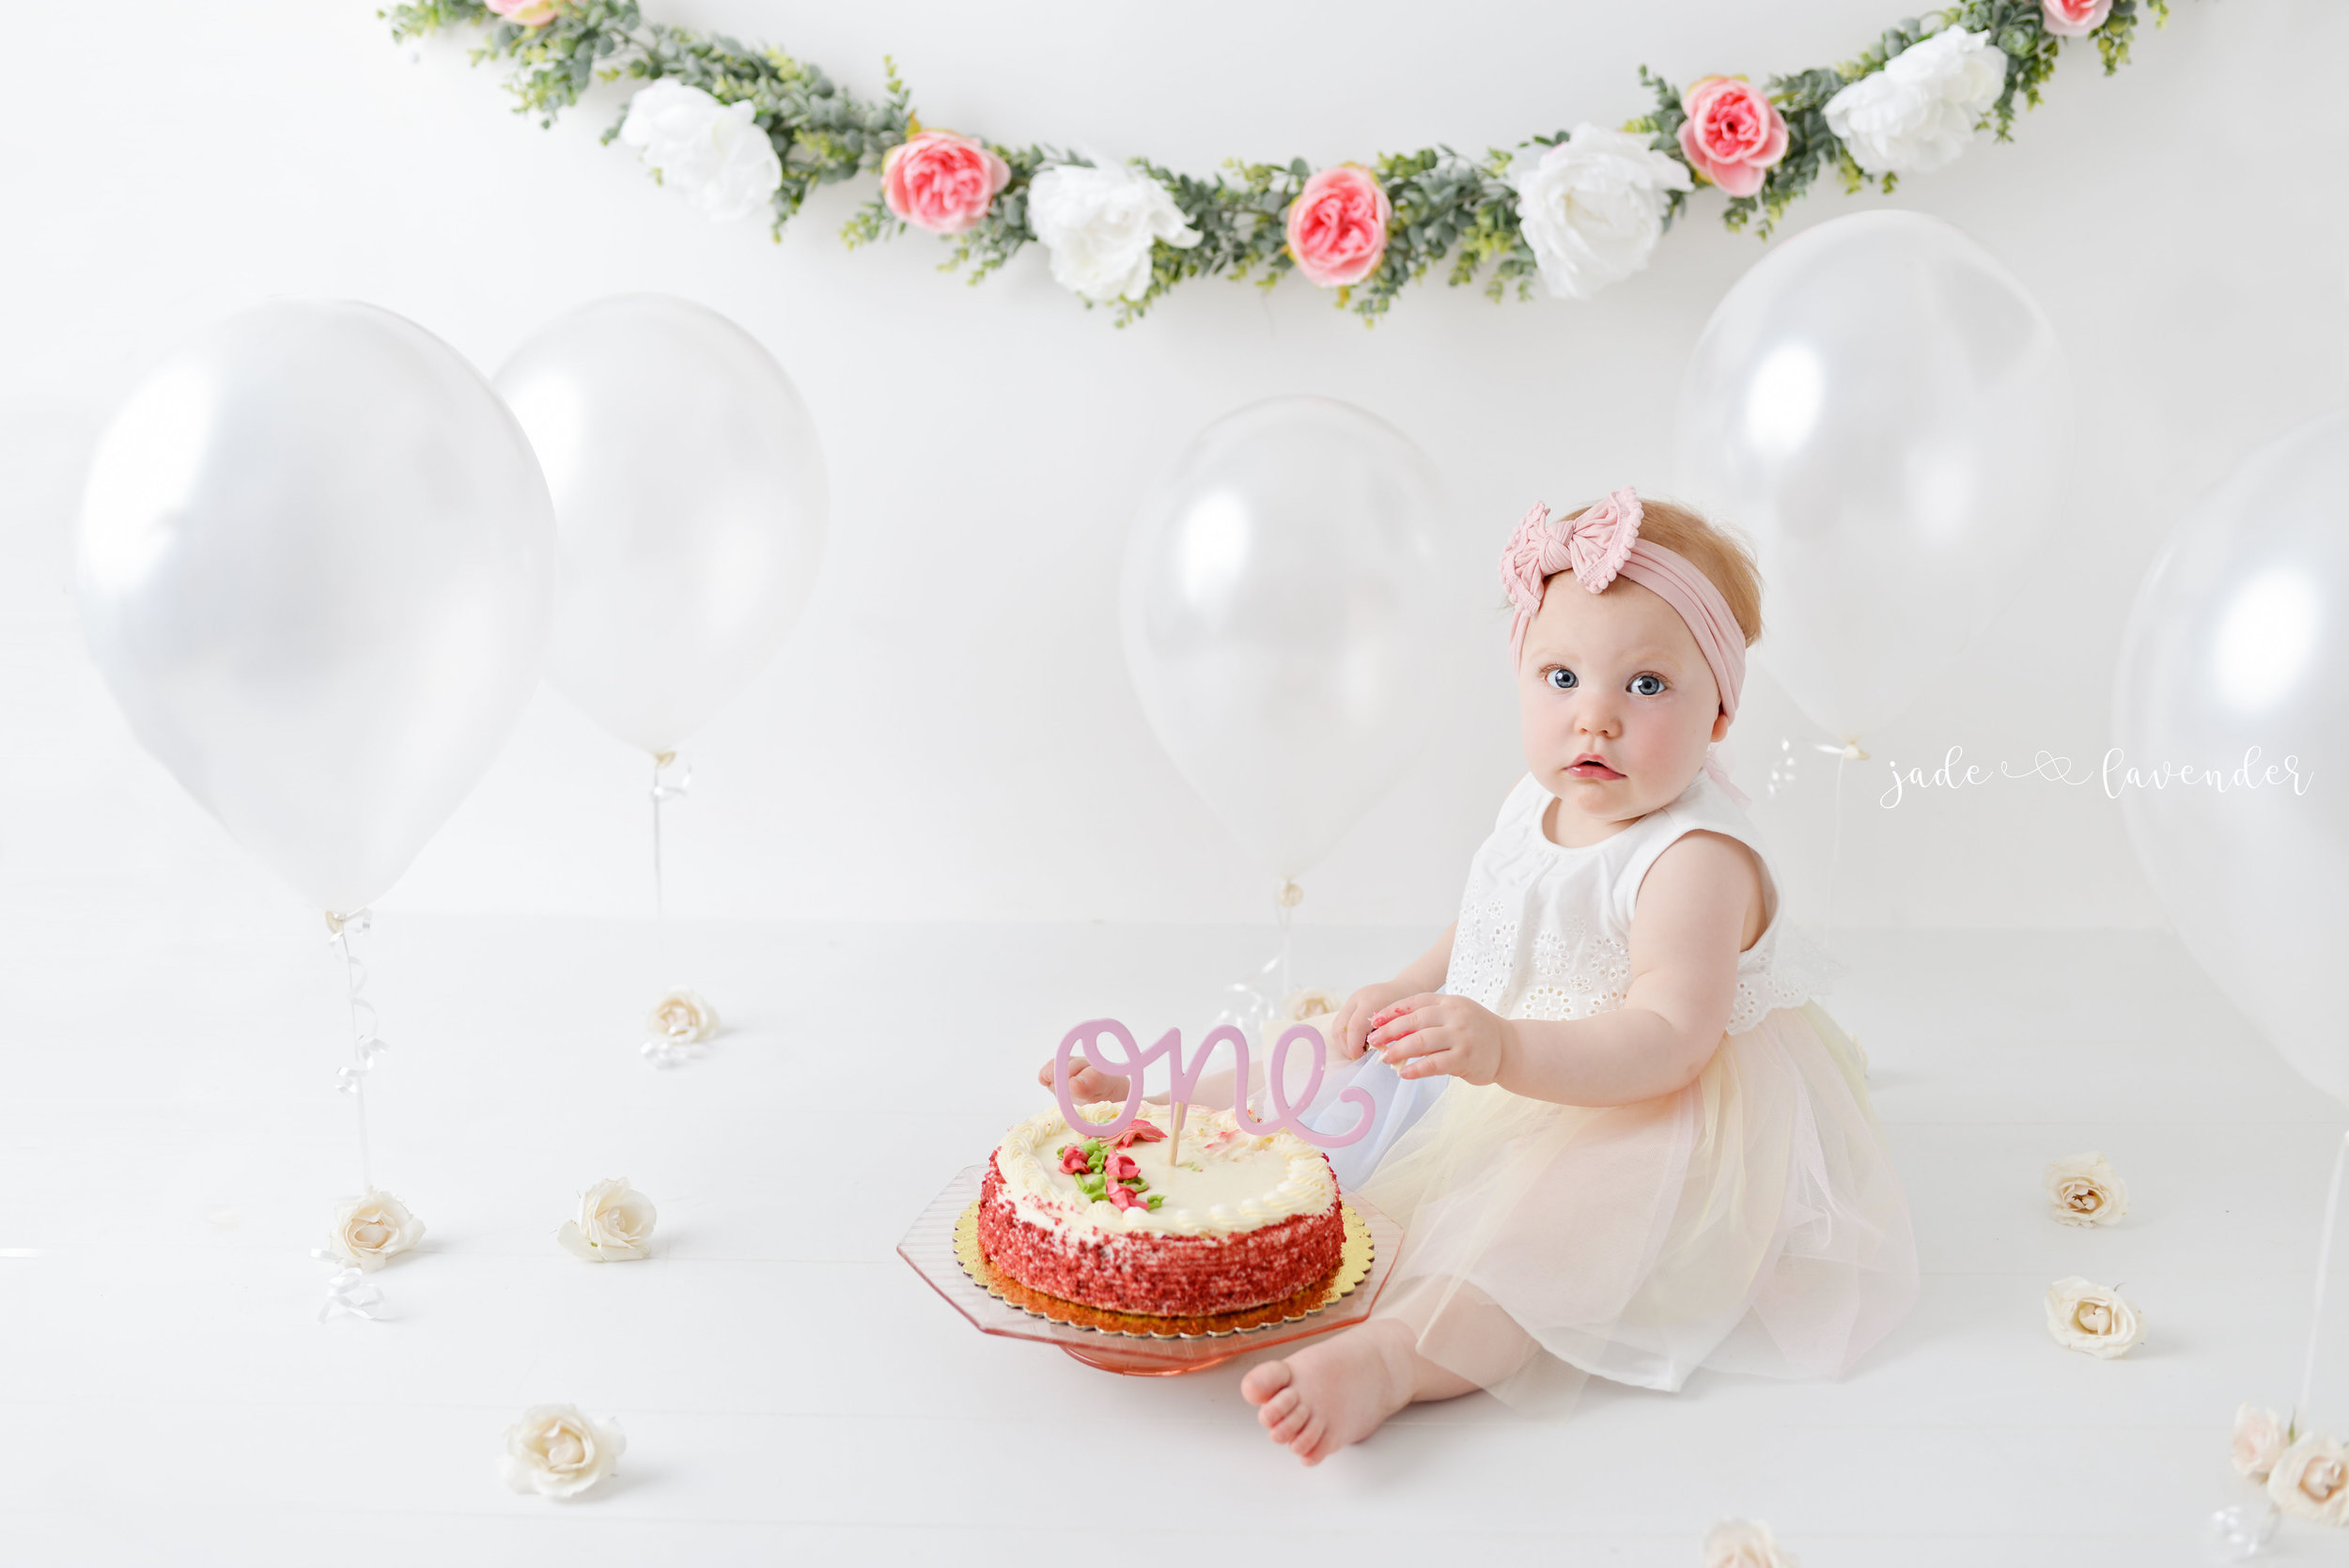 cake-smash-one-year-photos-baby-photography-newborn-infant-images-spokane-washington (4 of 6).jpg